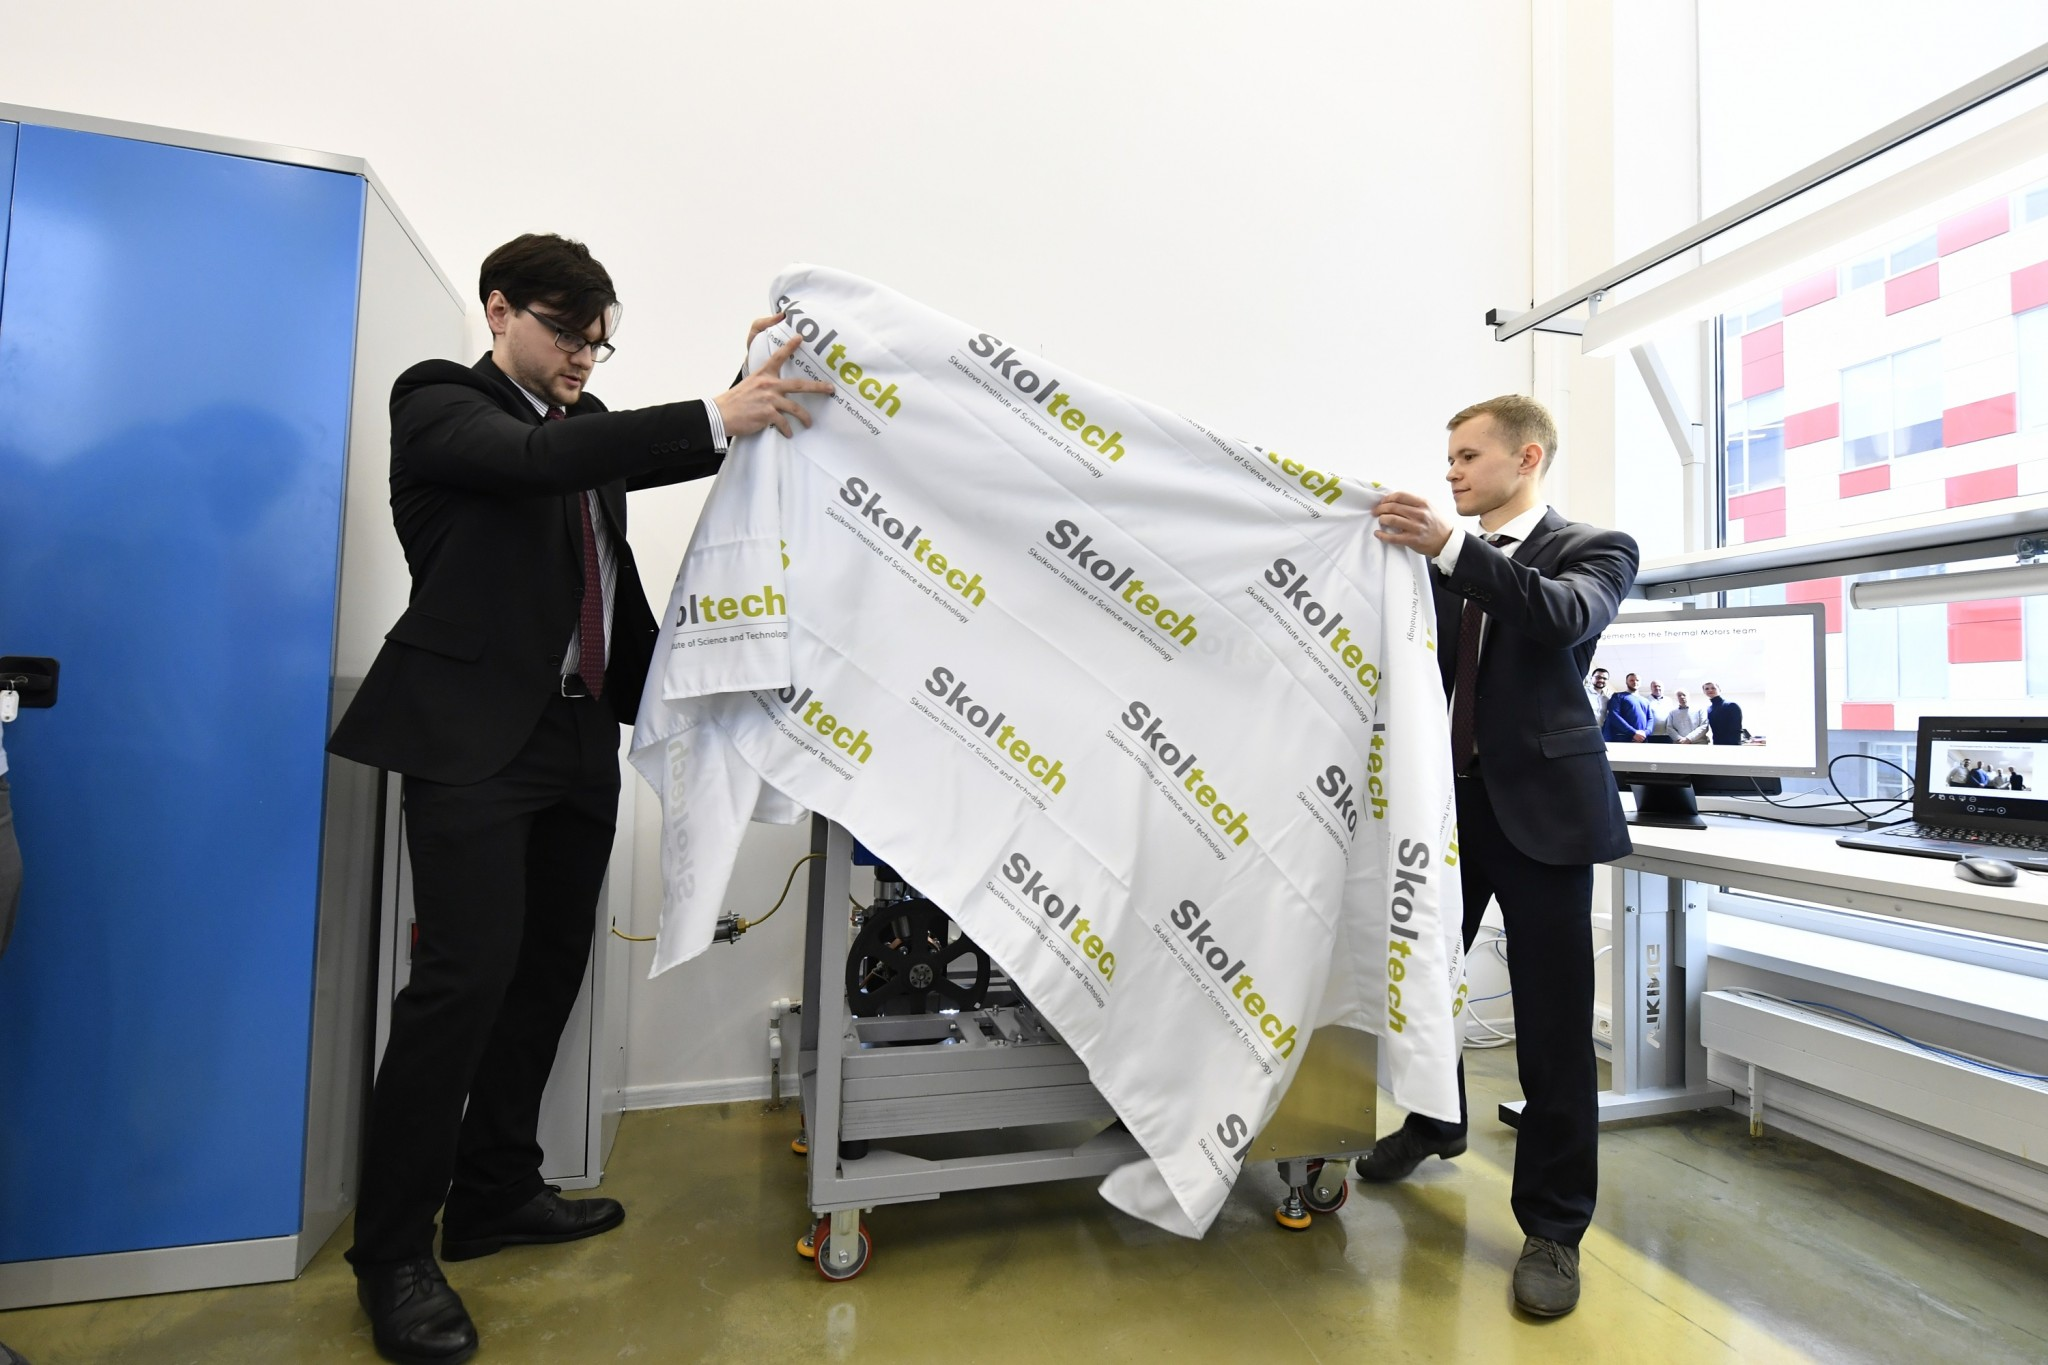 Smirnov and Saychenko reveal their creation in the Skoltech Center for Energy Systems. Photo: Skoltech.